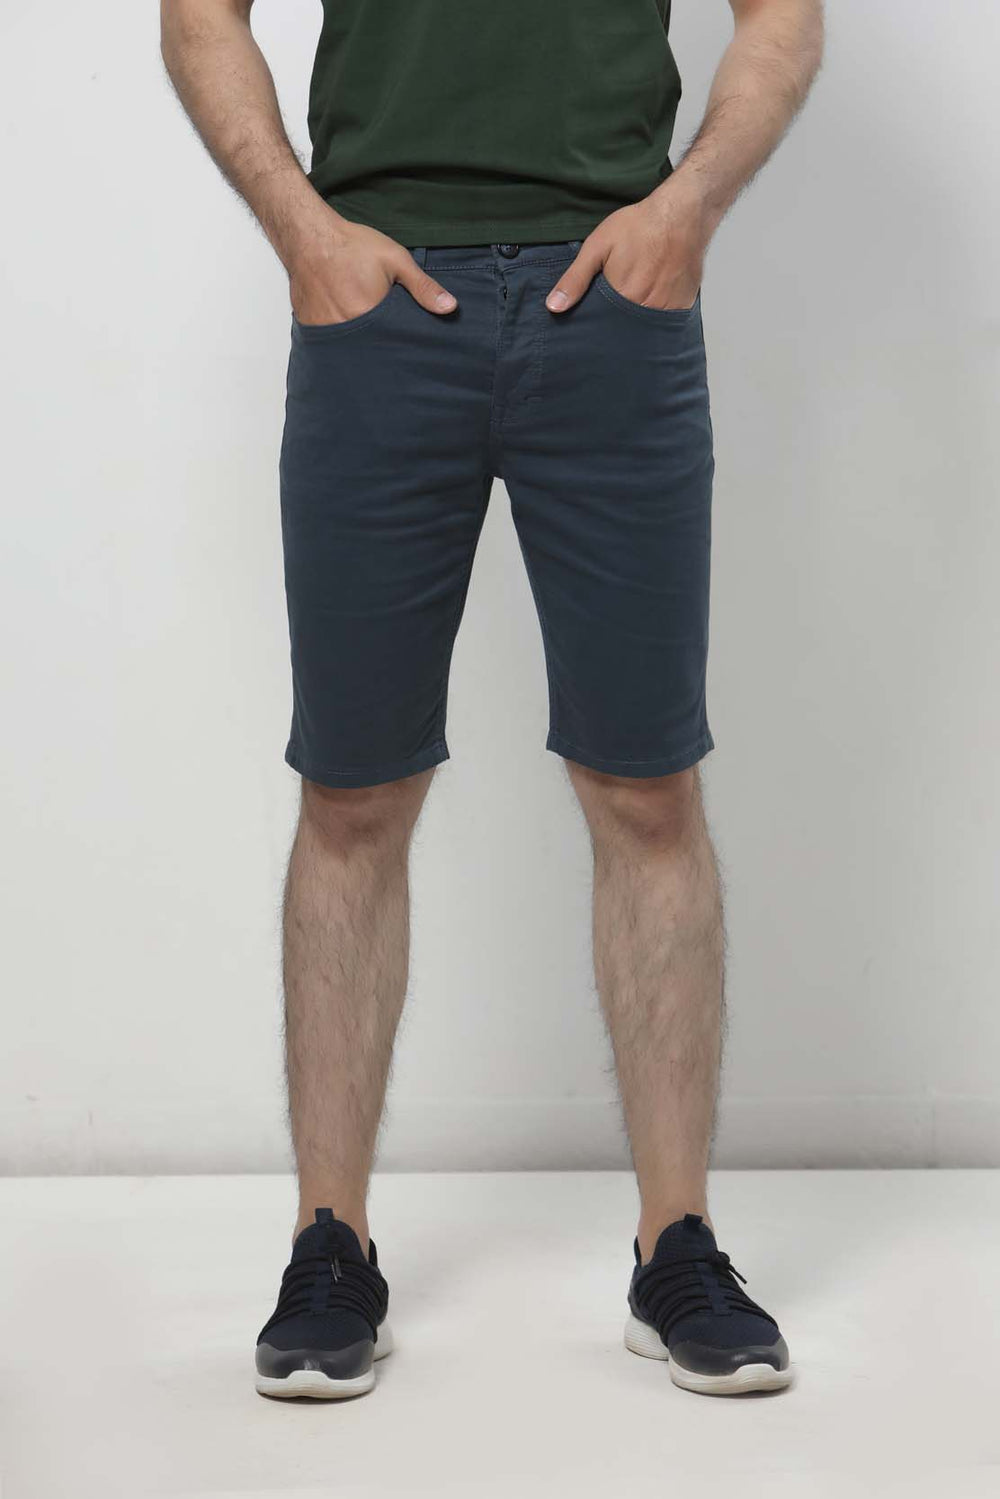 Blue Shorts HMNSS20003